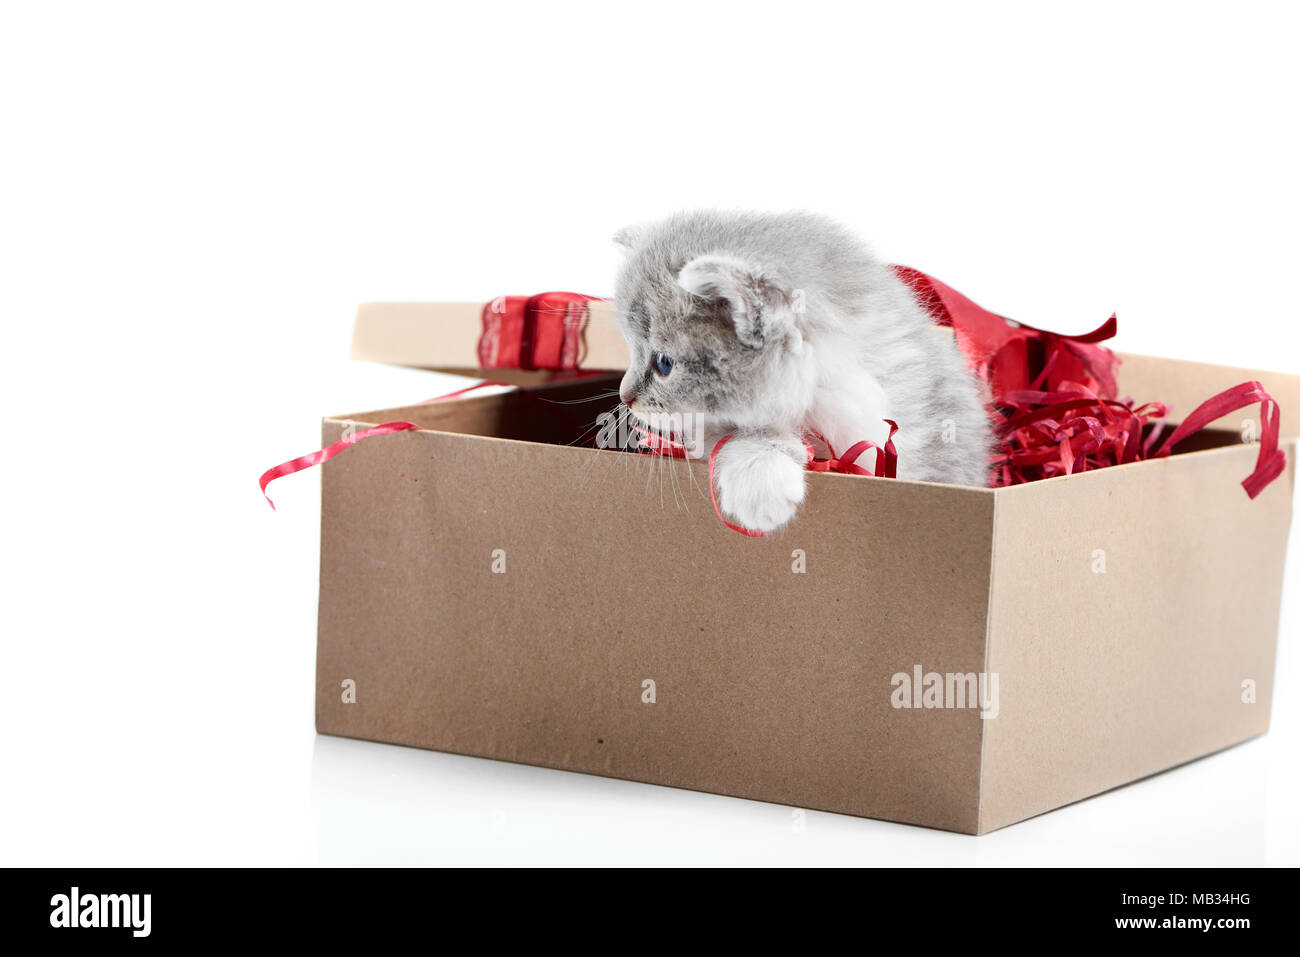 Small Adorable Grey Kitten Looking To Side While Sitting In Decorated Cardboard Box Being Birthday Present Little Cute Funny Curious Playful Cat Valentine